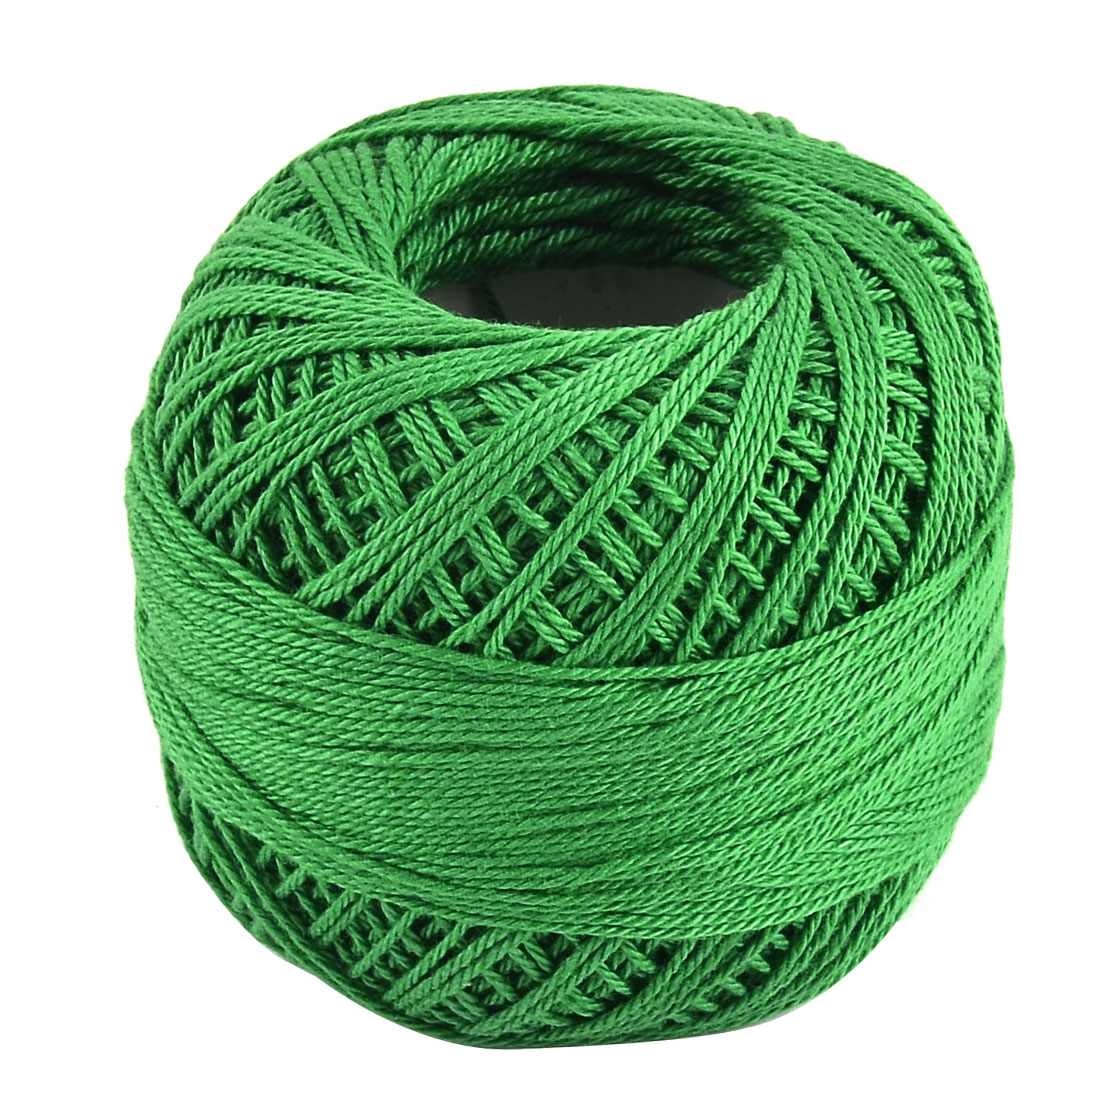 Cotton Handcraft Hand Knitting Weaving Glove Shawl Sweater Yarn Thread Green